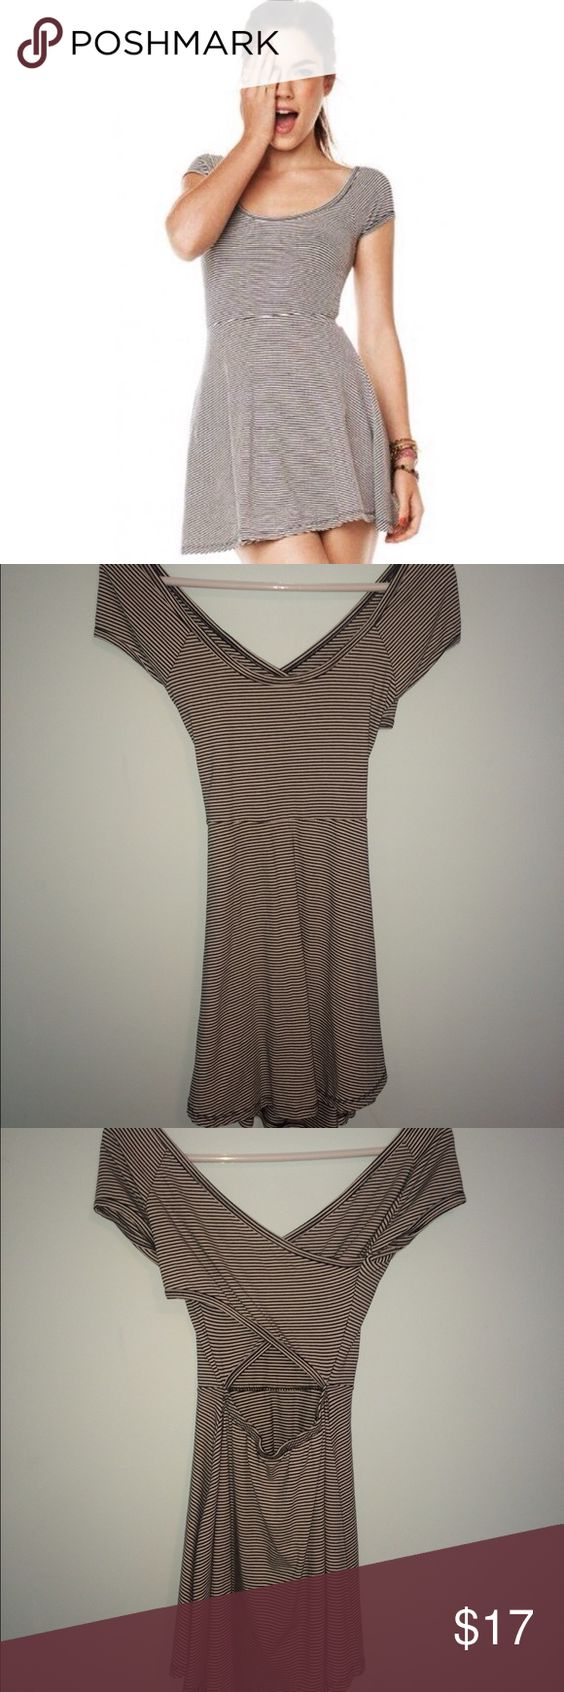 Brandy Melville Striped Dress Brandy Melville striped black and white skater dress, worn a few times but still in very good condition! Skater style dress with a cut-out in the back, very flattering. Brandy Melville Dresses Mini